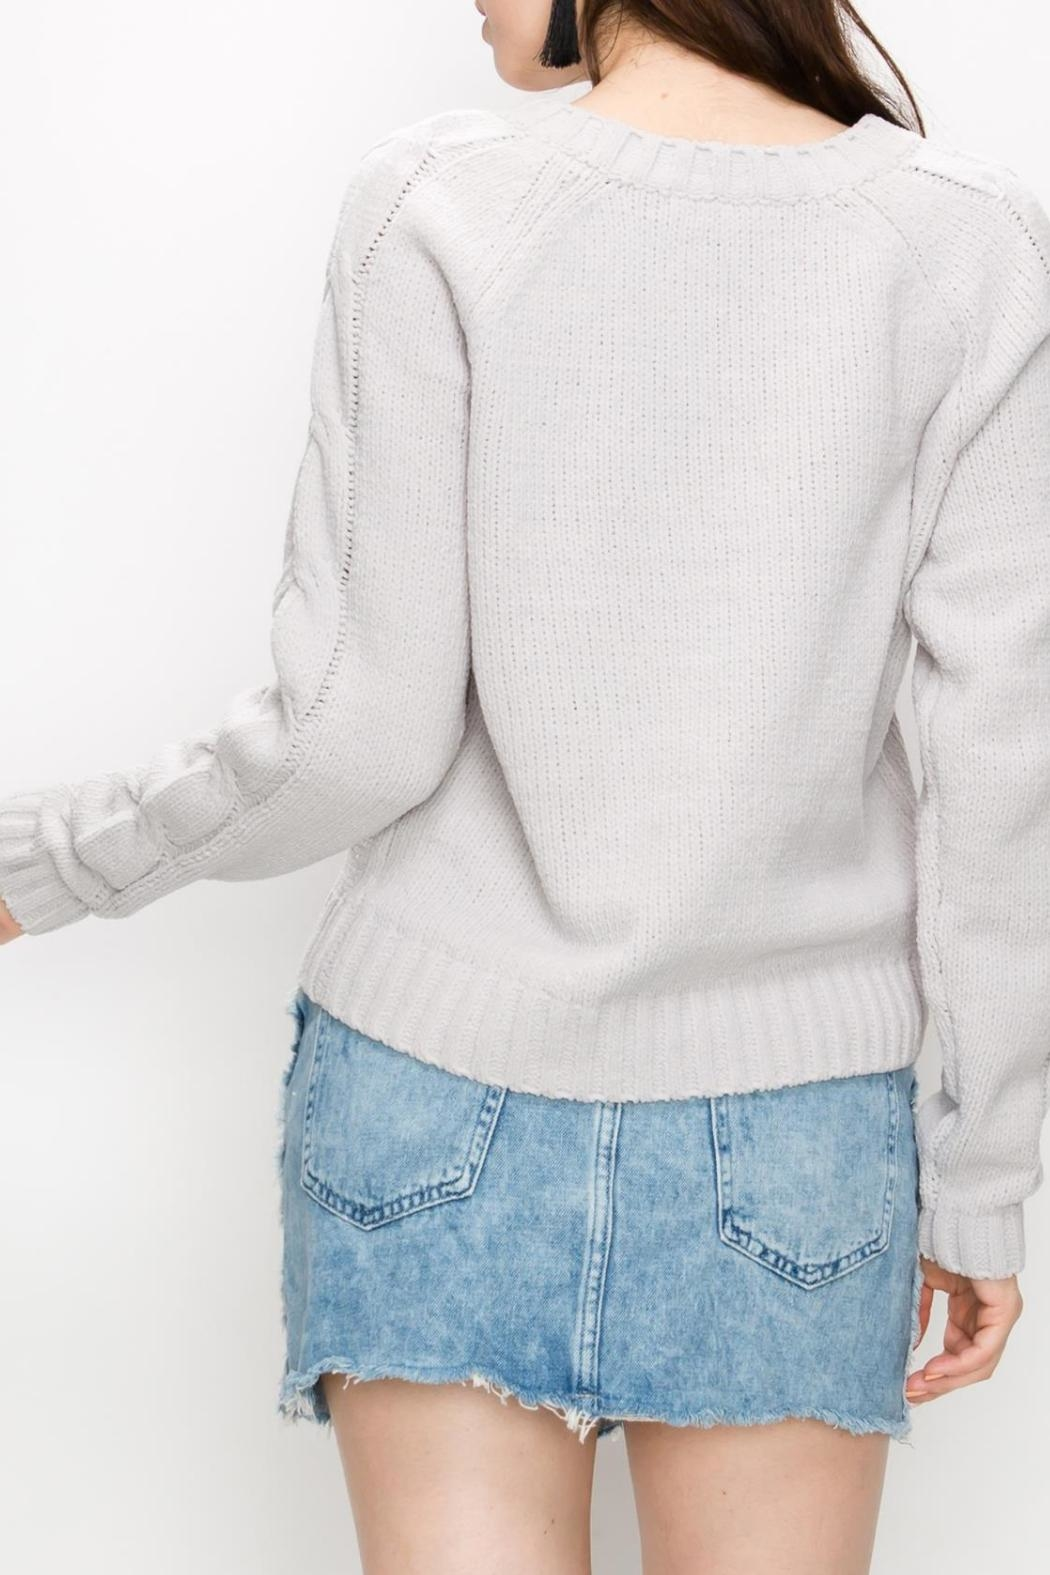 HYVE Cloud Cable-Knit Sweater - Front Full Image